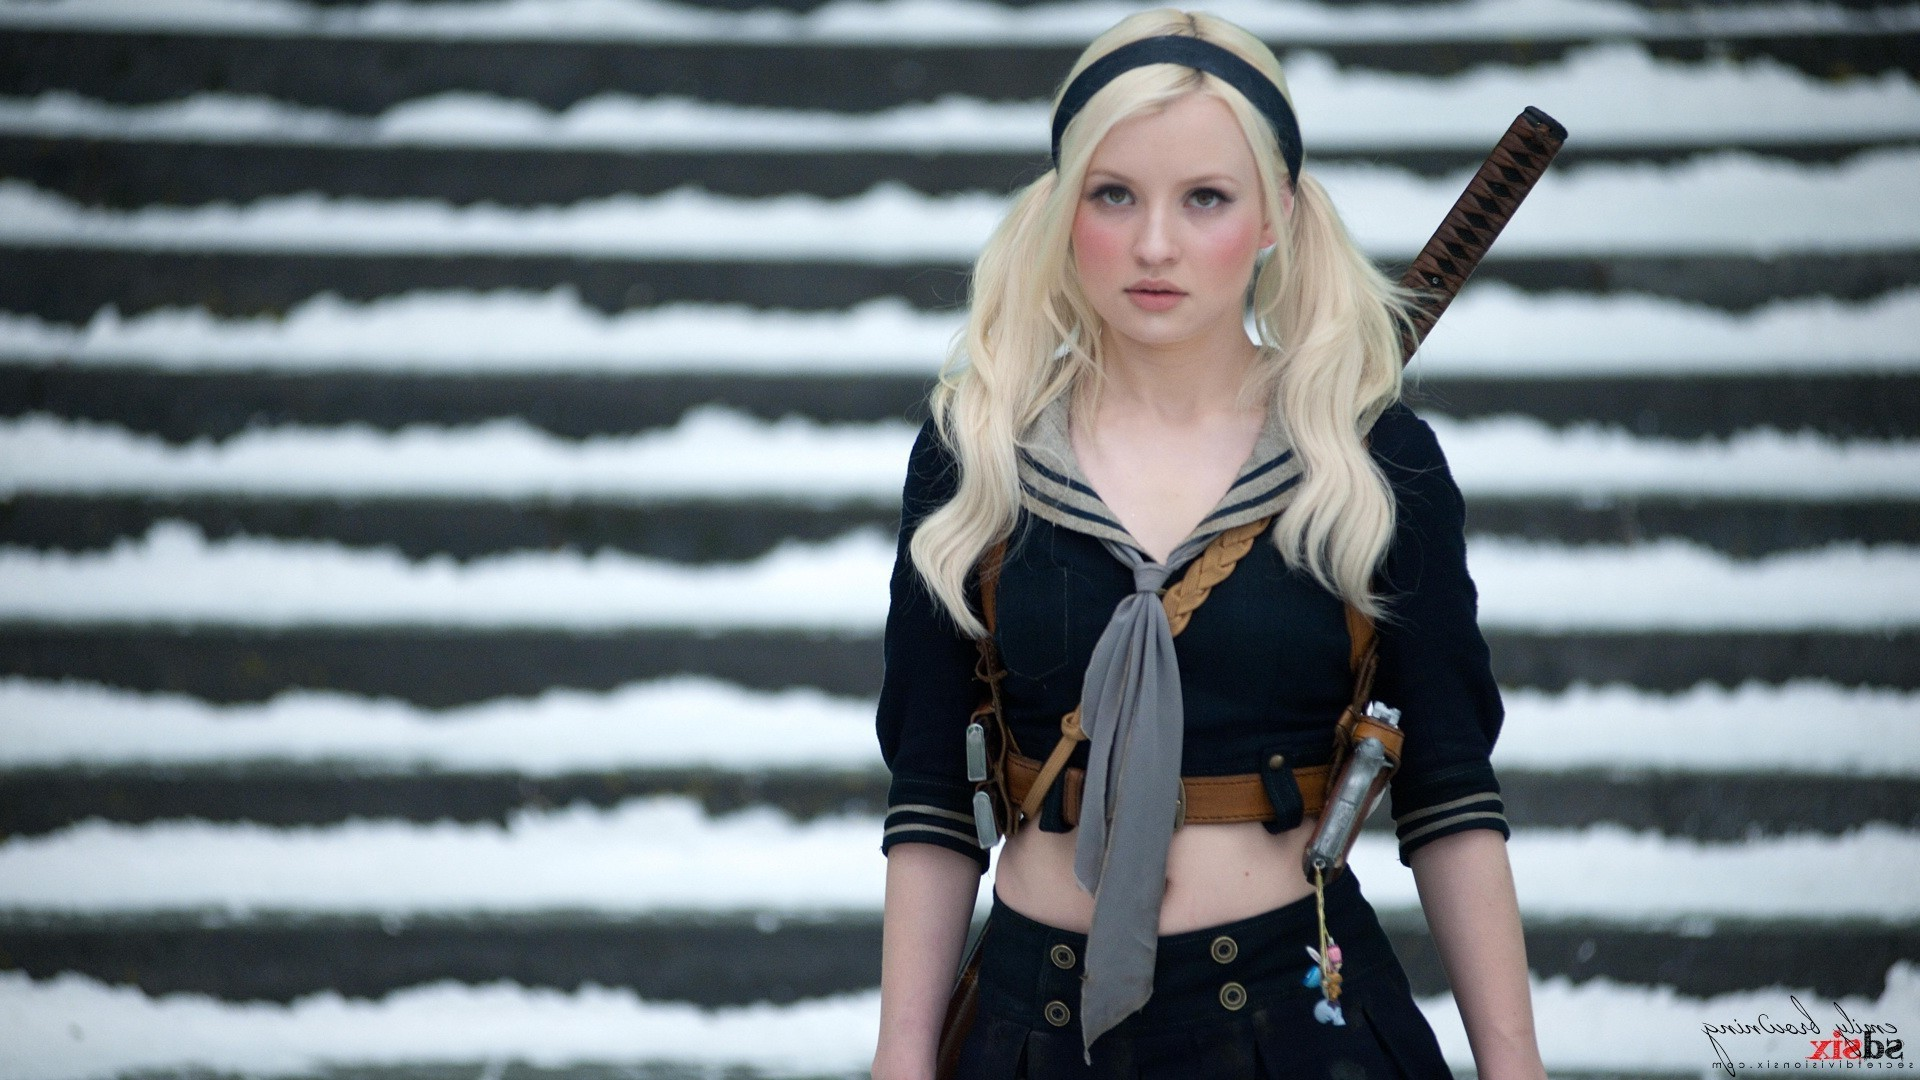 Baby Girl Wallpapers For Mobile Sucker Punch Emily Browning Women Wallpapers Hd